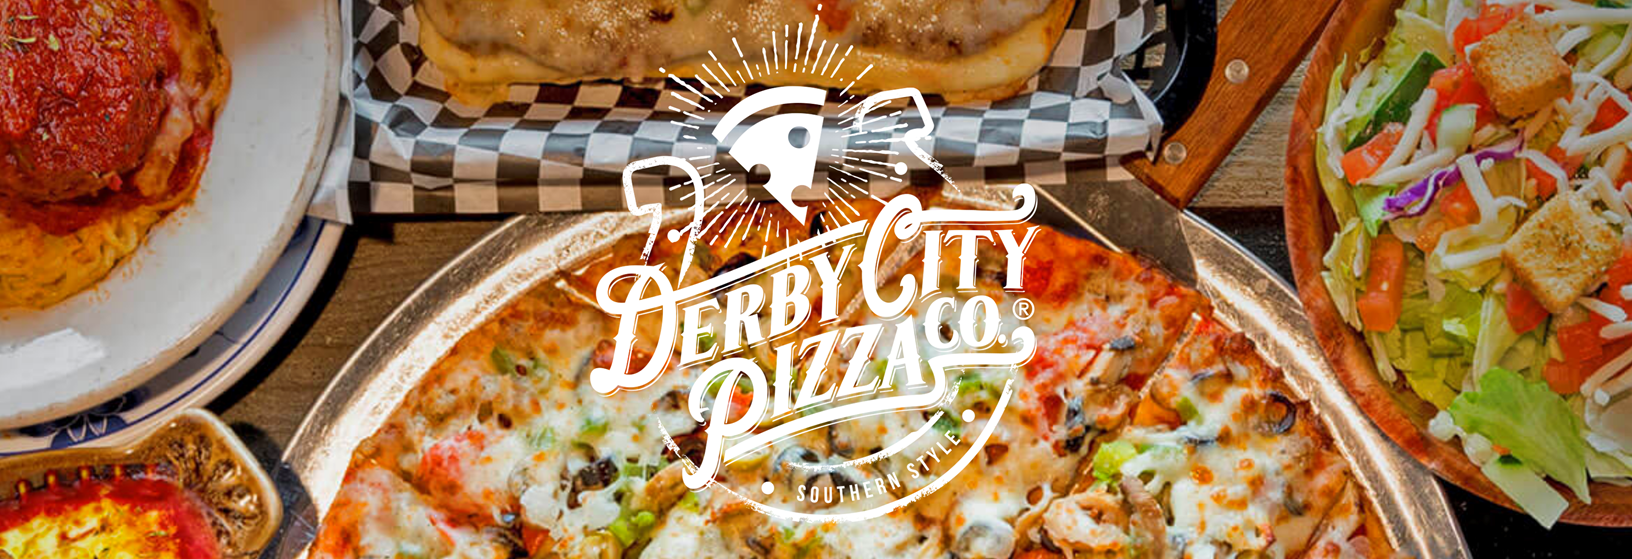 Derby City Pizza Co. Southern Style